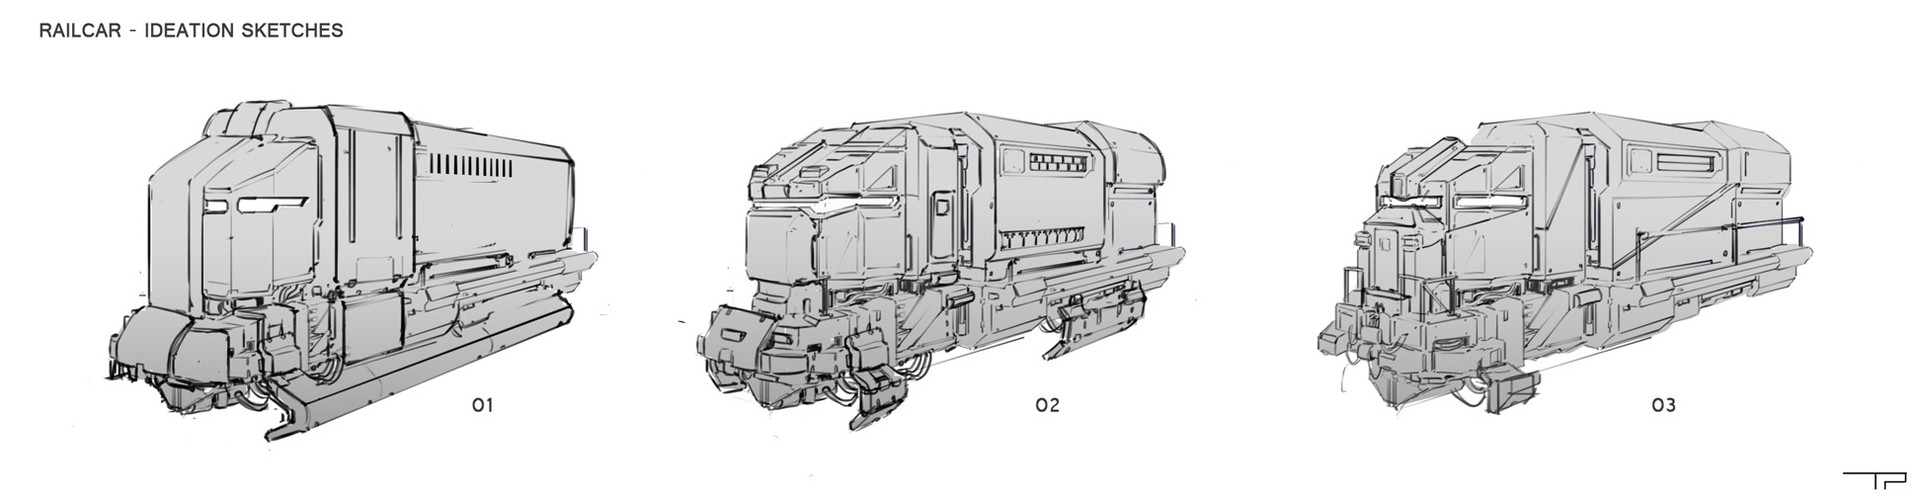 Timo peter railcar ideationsketches timopeter